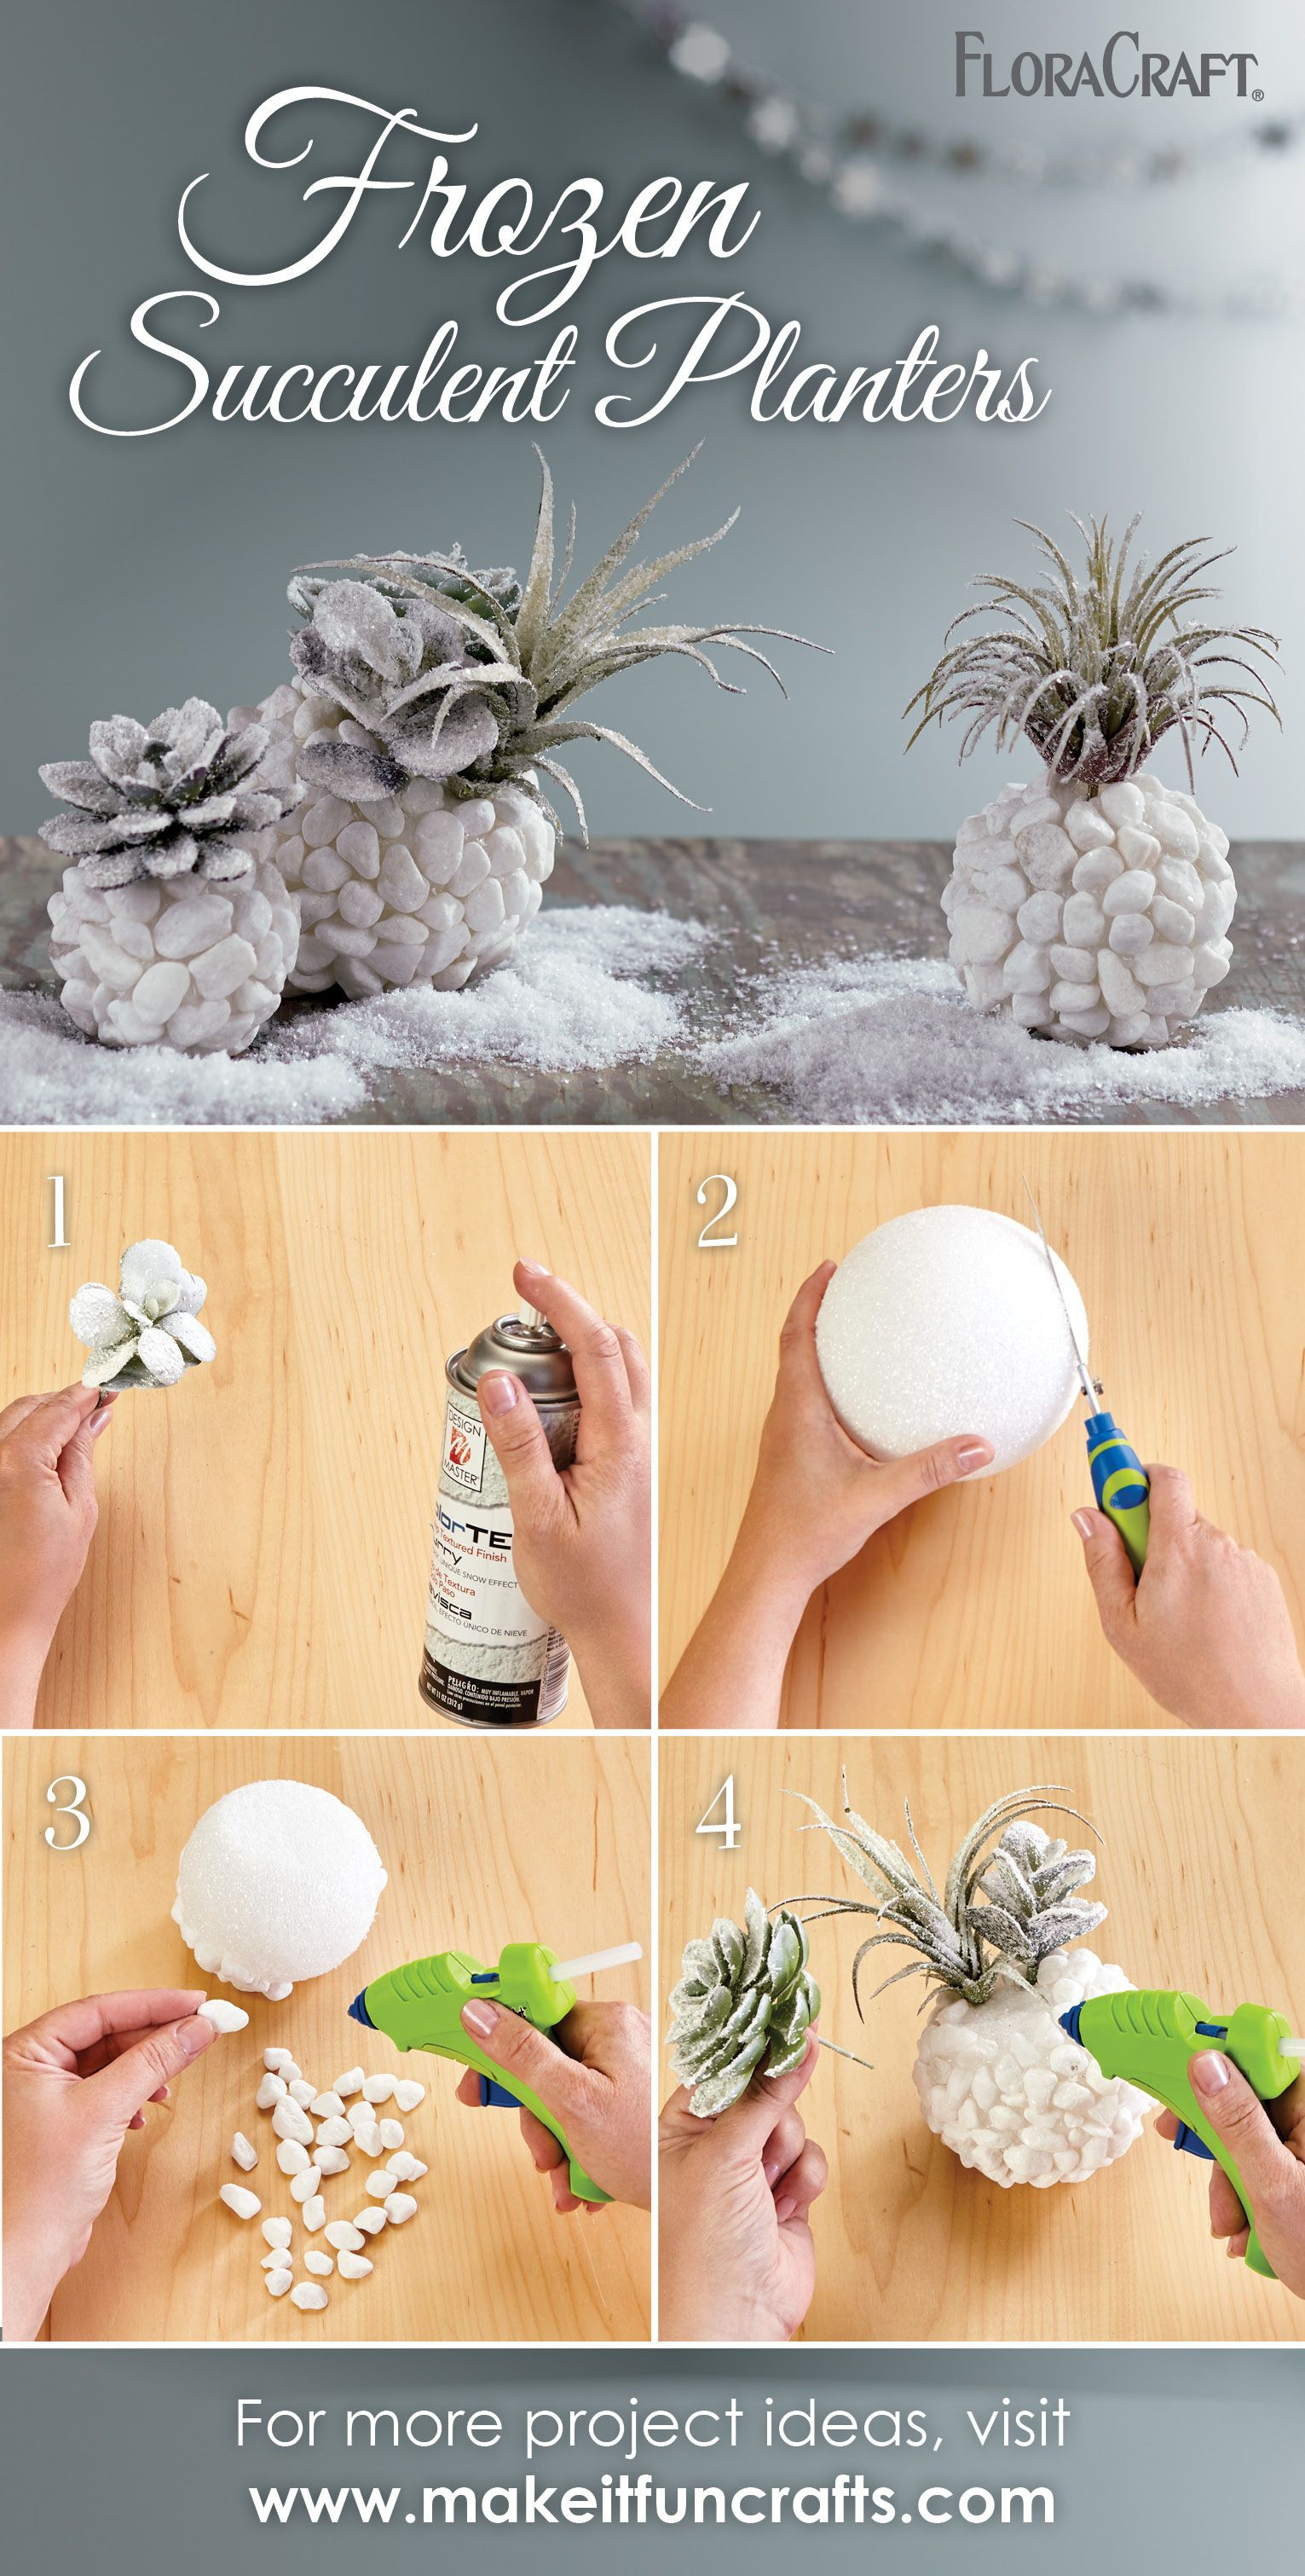 ac moore vases of add a tropical touch to your winter decor with this idea from make regarding add a tropical touch to your winter decor with this idea from make it fun crafts